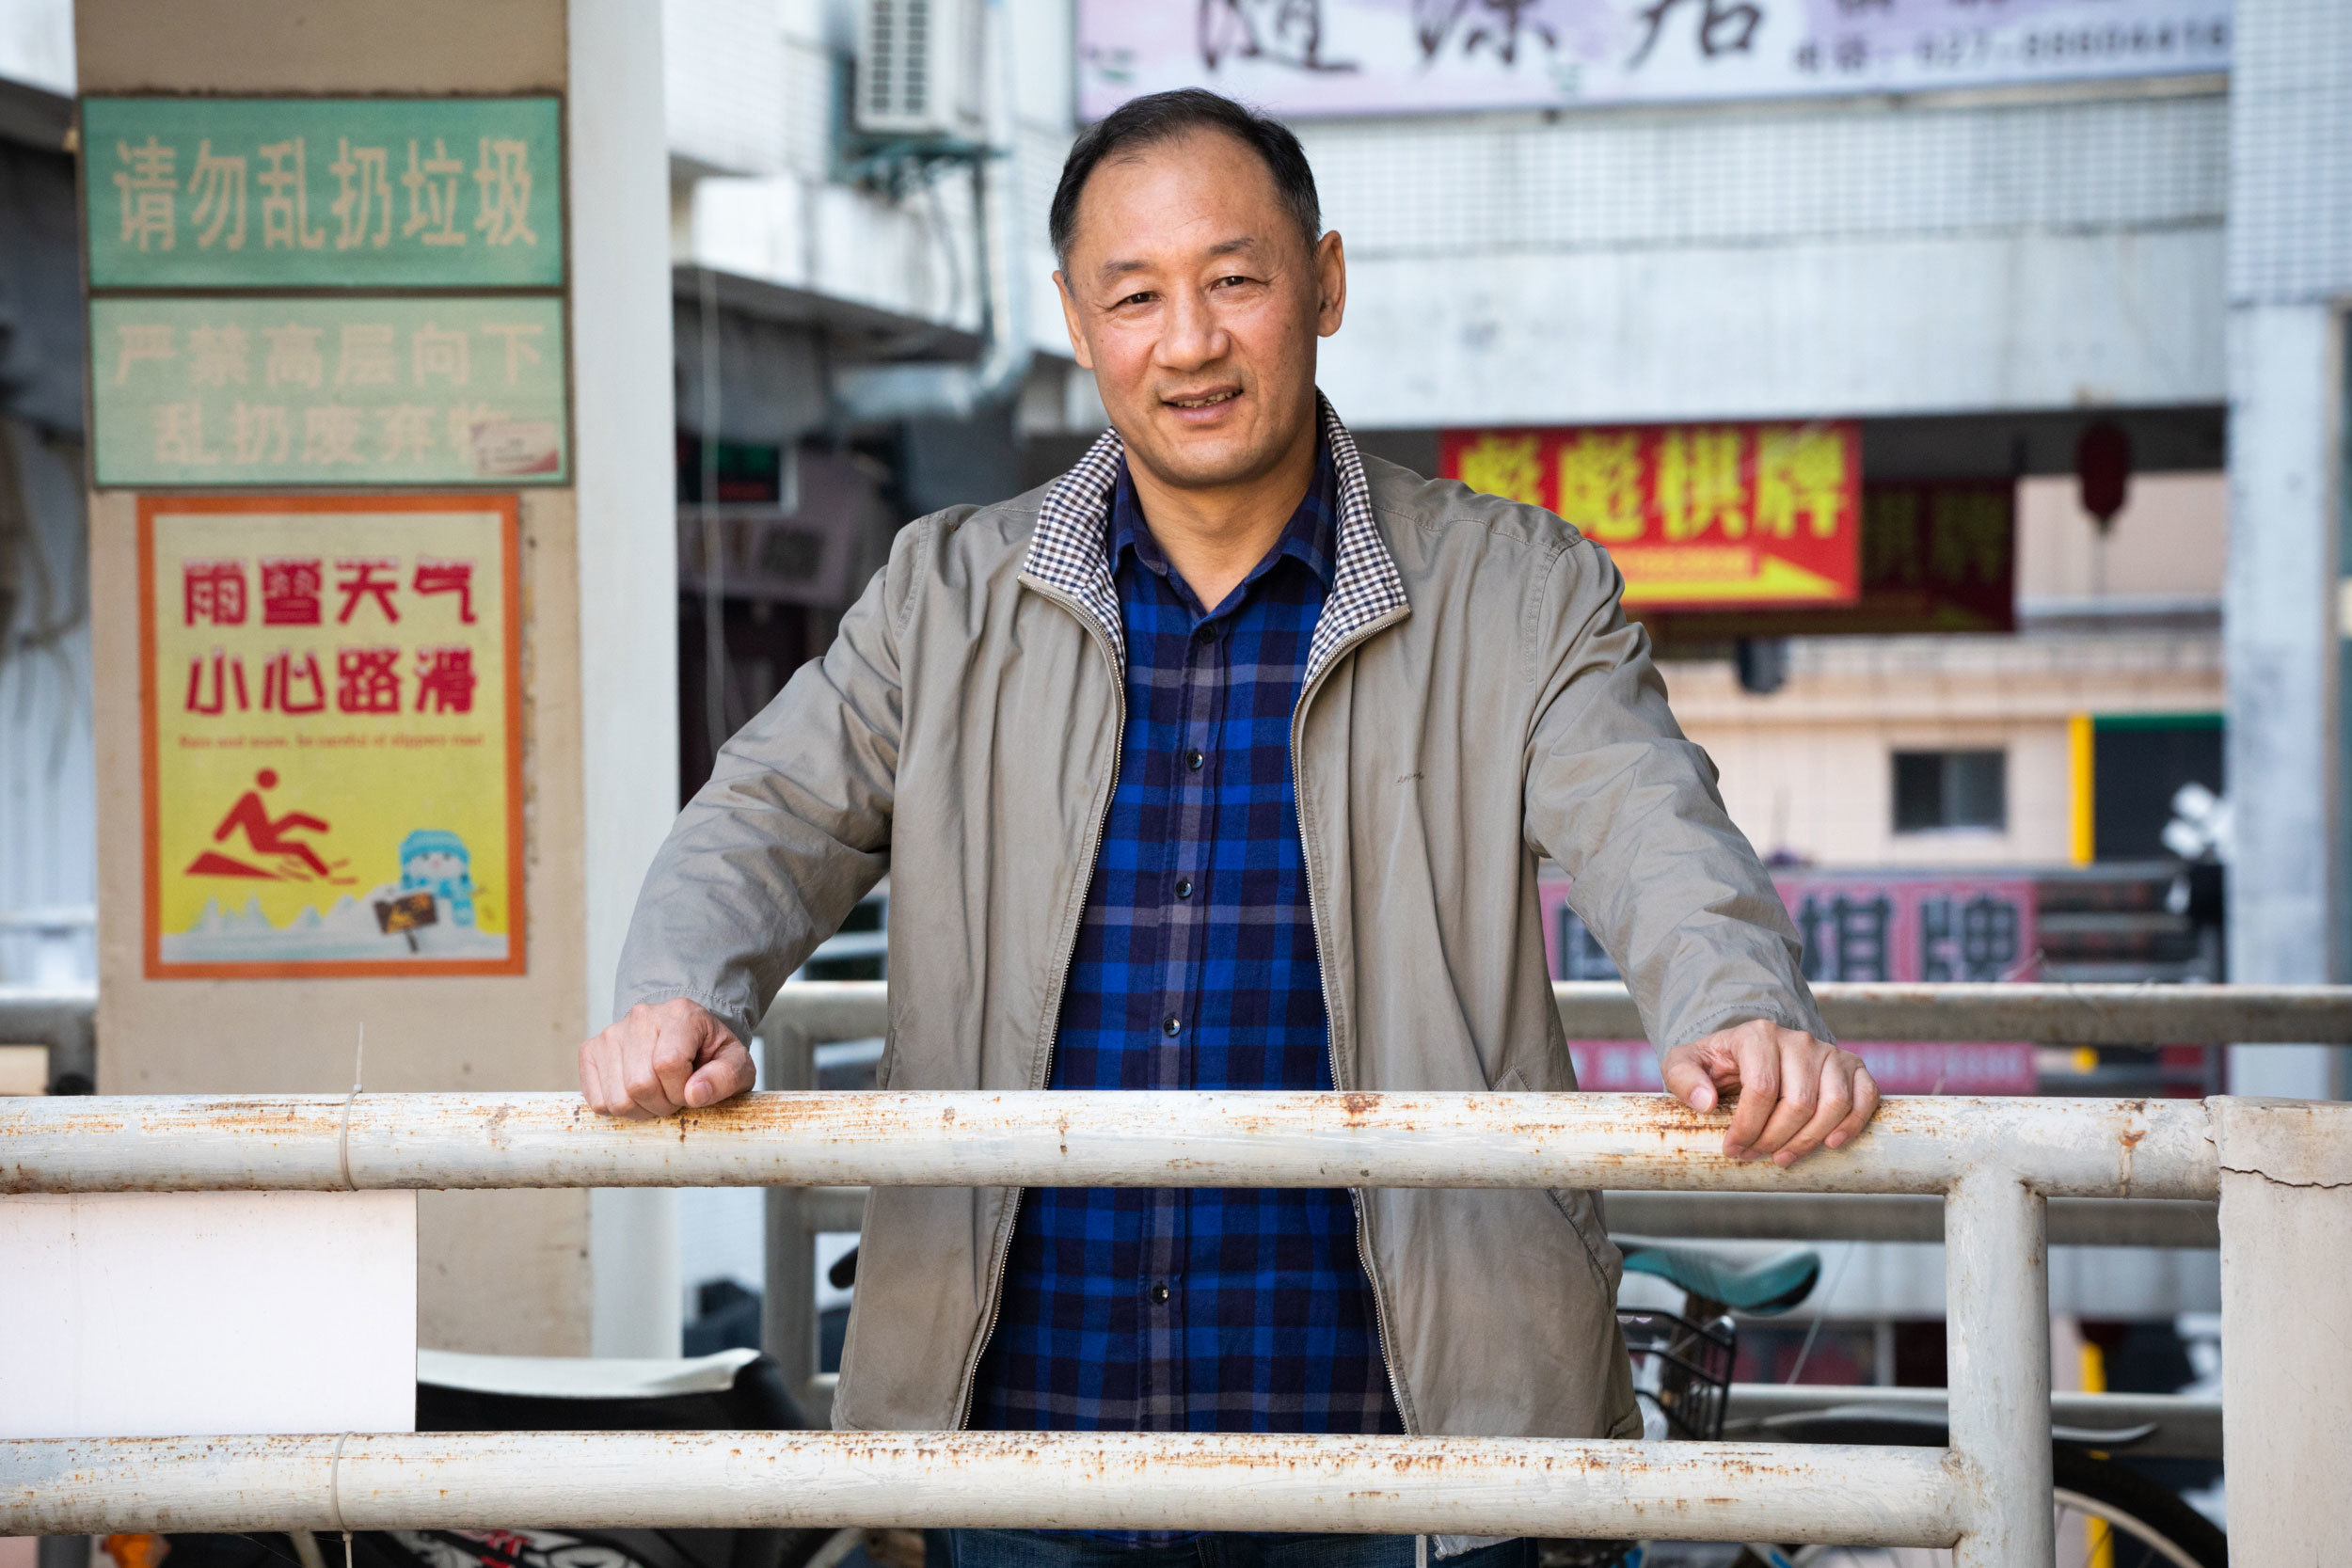 Dr. Yu Changping was the first doctor to be infected with COVID-19 in Wuhan. He spent his time in treatment posting inspirational messages to others. Chinese state media said he was 'too handsome to die.' (Saša Petricic/CBC)